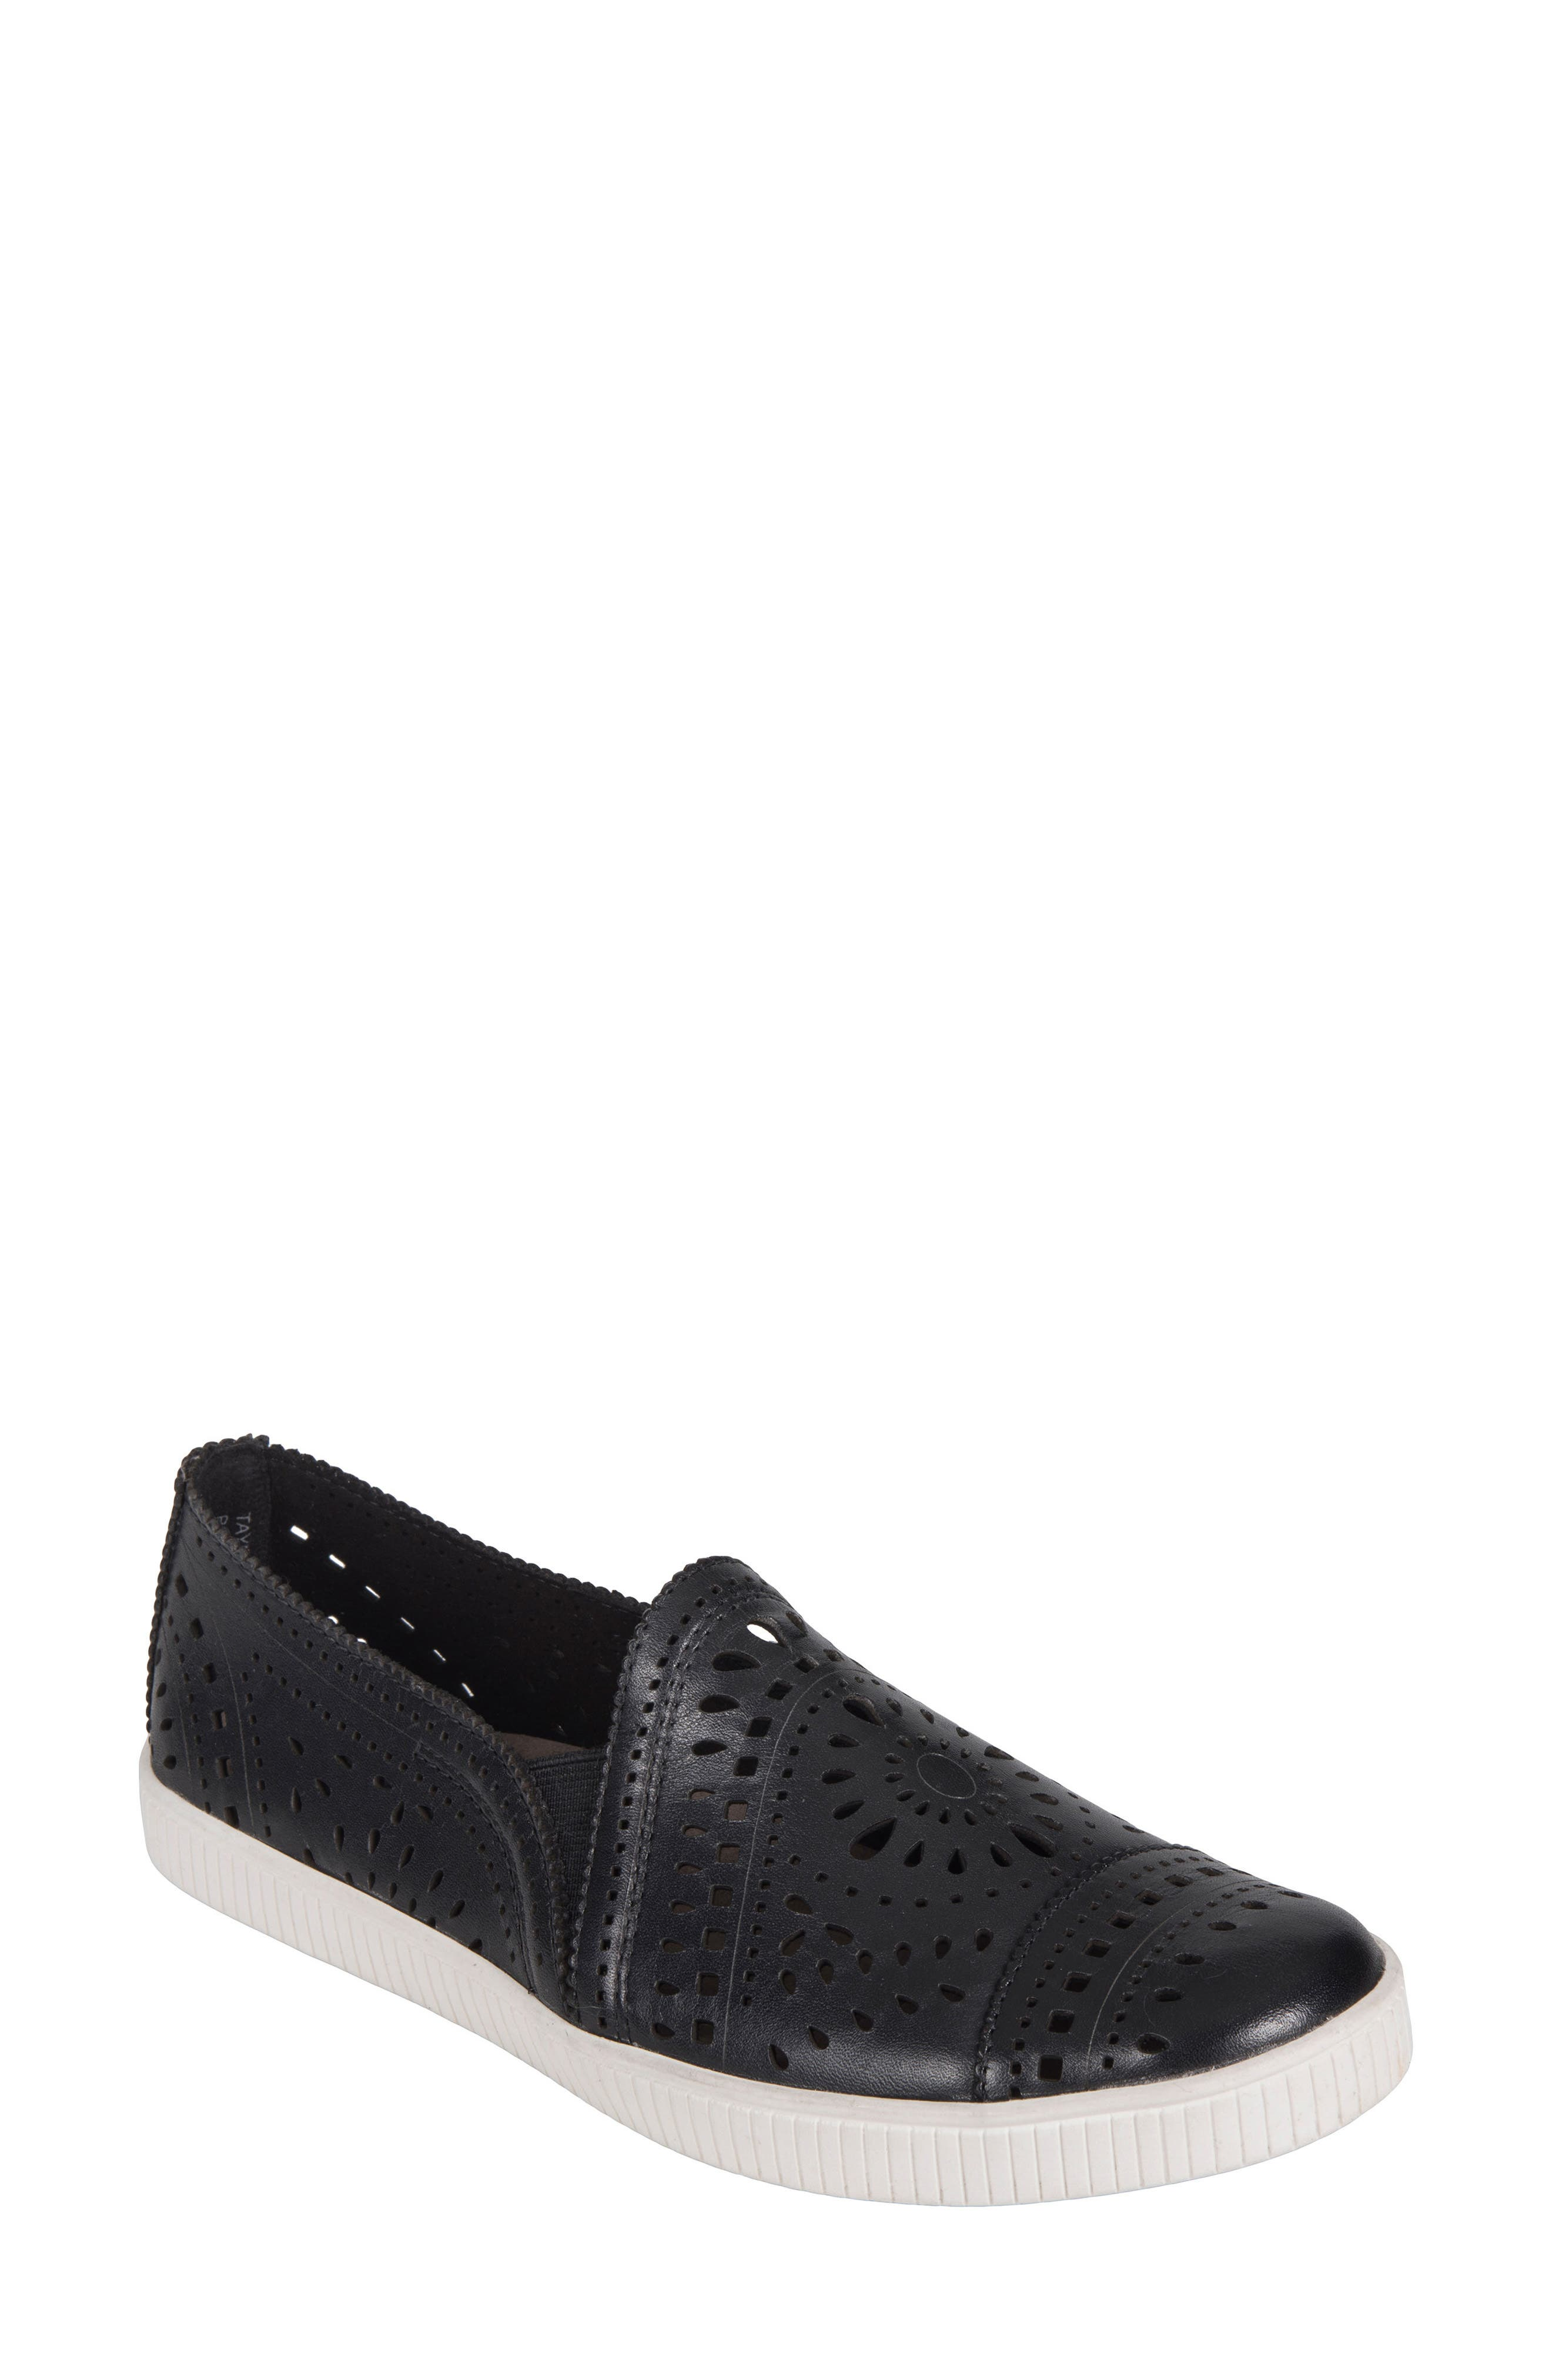 Tayberry Perforated Slip-On Sneaker,                             Main thumbnail 1, color,                             001